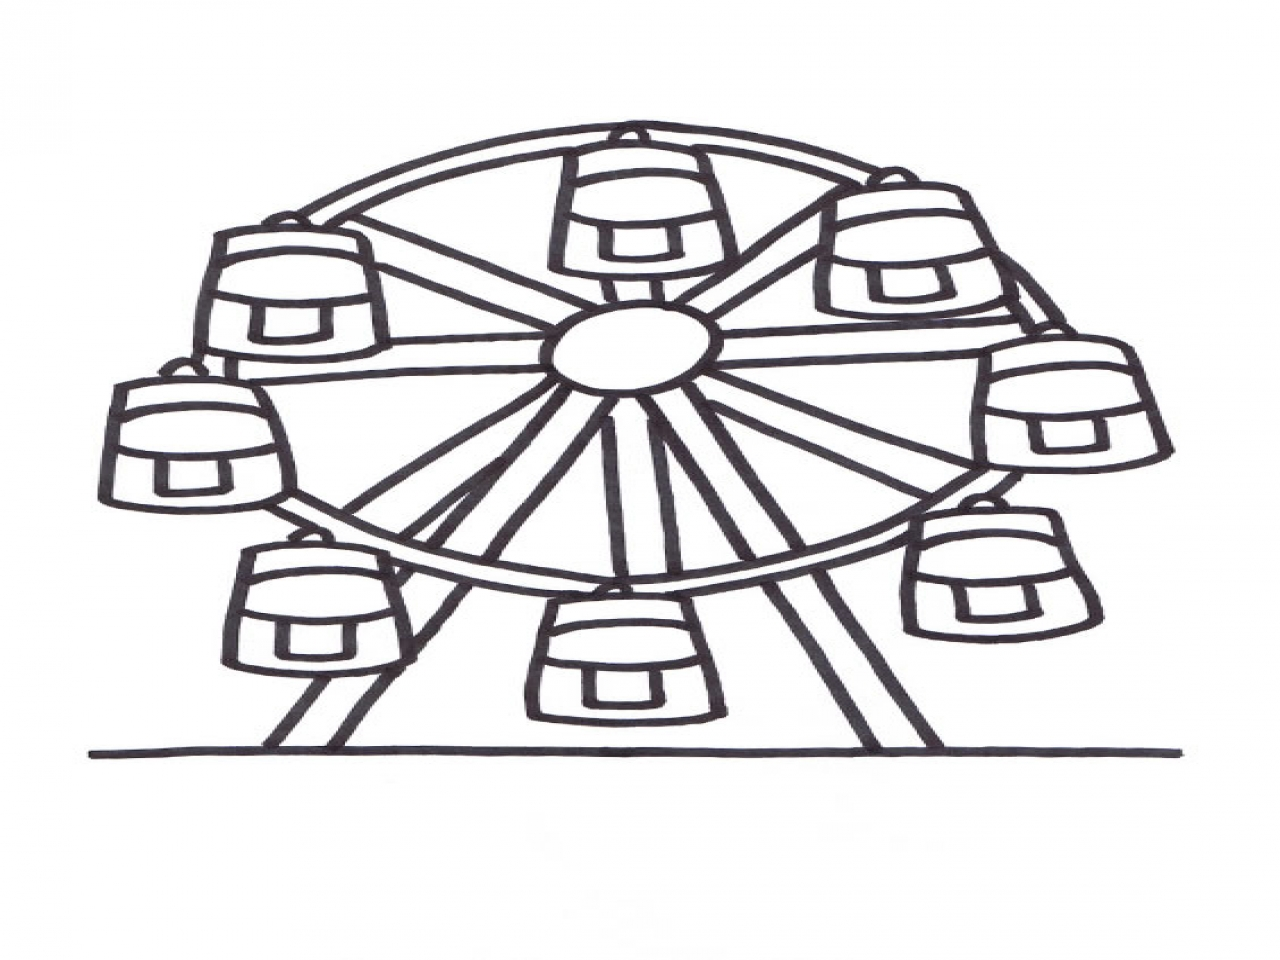 Ferris Wheel Coloring Stock Illustrations – 11 Ferris Wheel Coloring Stock  Illustrations, Vectors & Clipart - Dreamstime | 960x1280